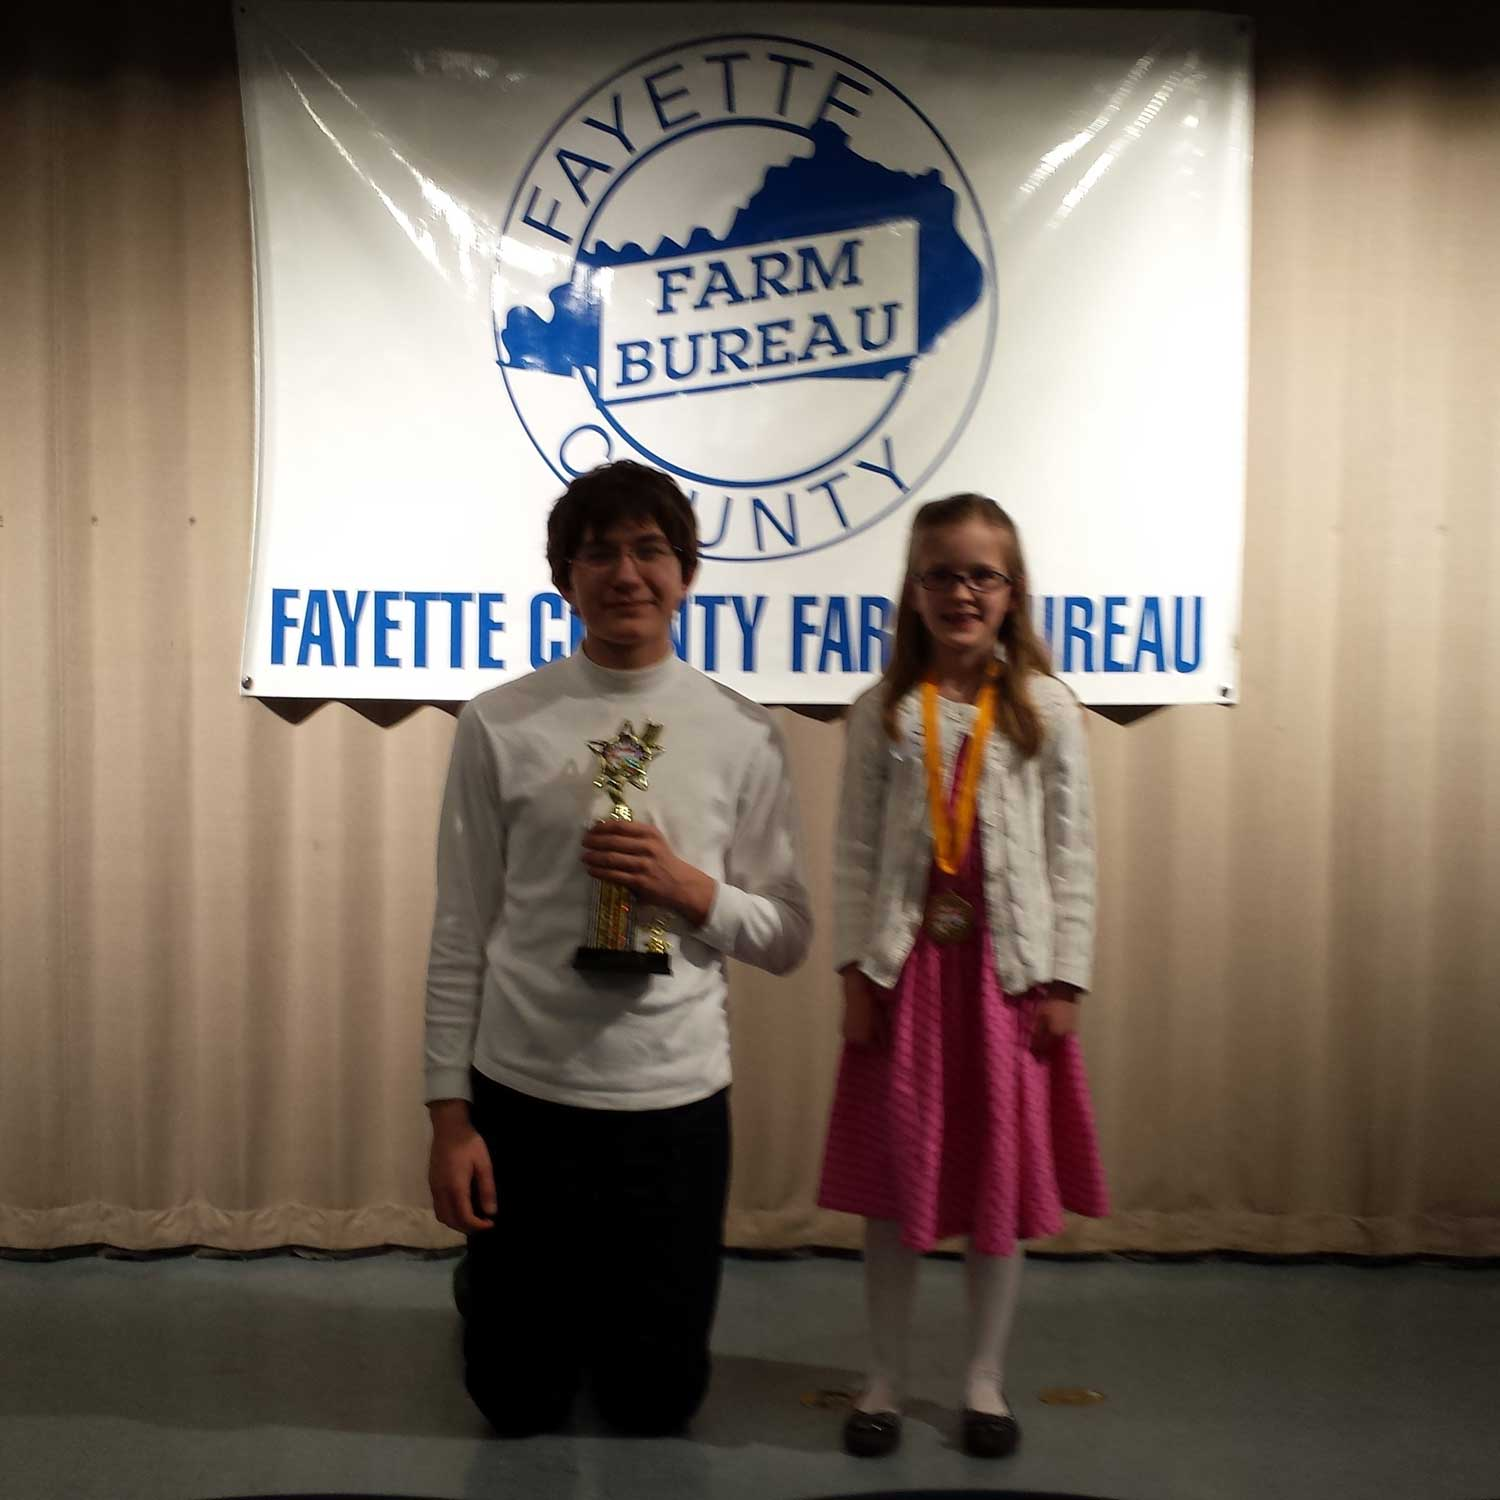 2015 Spelling Bee Champs - Max Borgrad and Ashley Devore